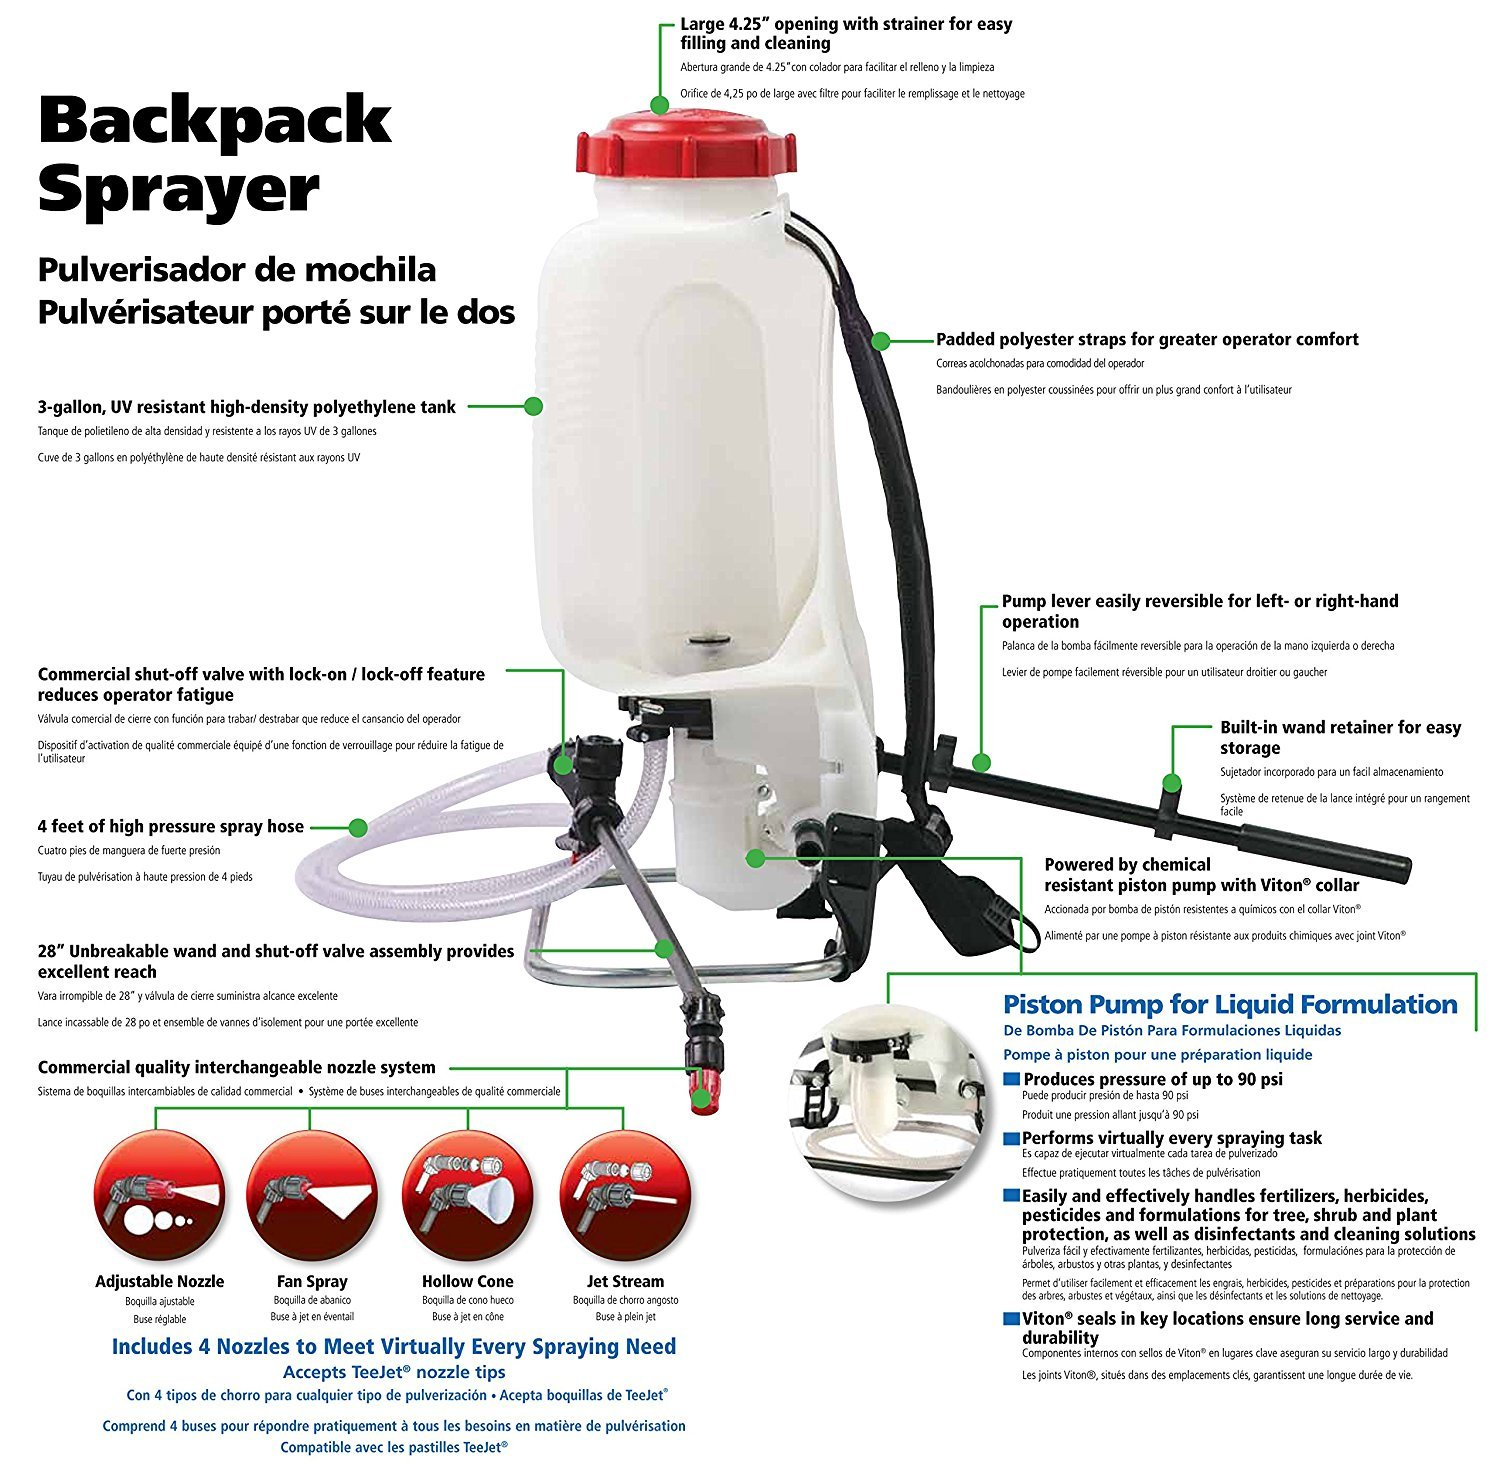 Amazon.com : Solo 473-P 3-Gallon Professional Backpack Sprayer (Pack of 2) : Garden & Outdoor